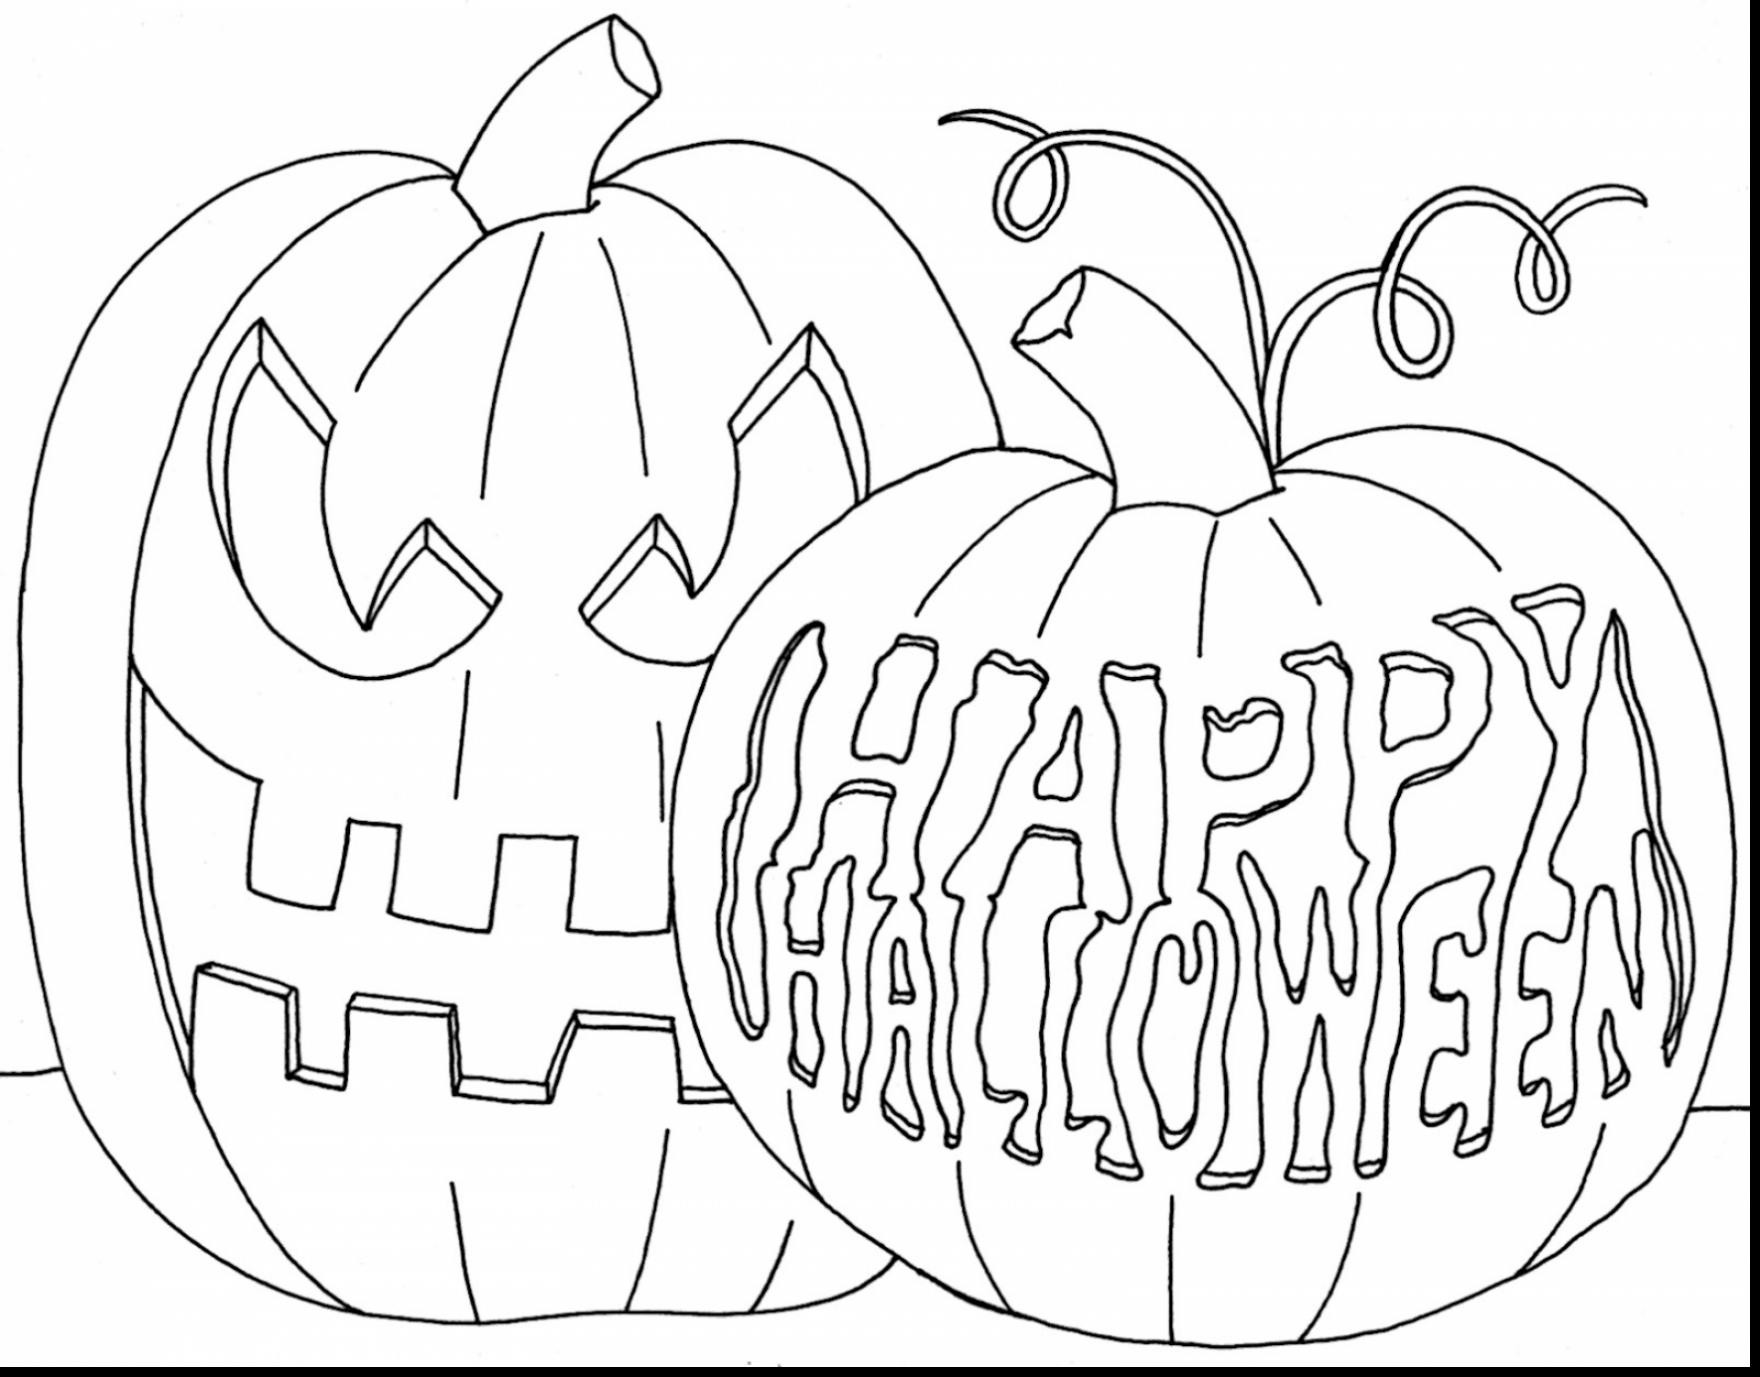 October Printable Coloring Pages  October Coloring Pages Printable